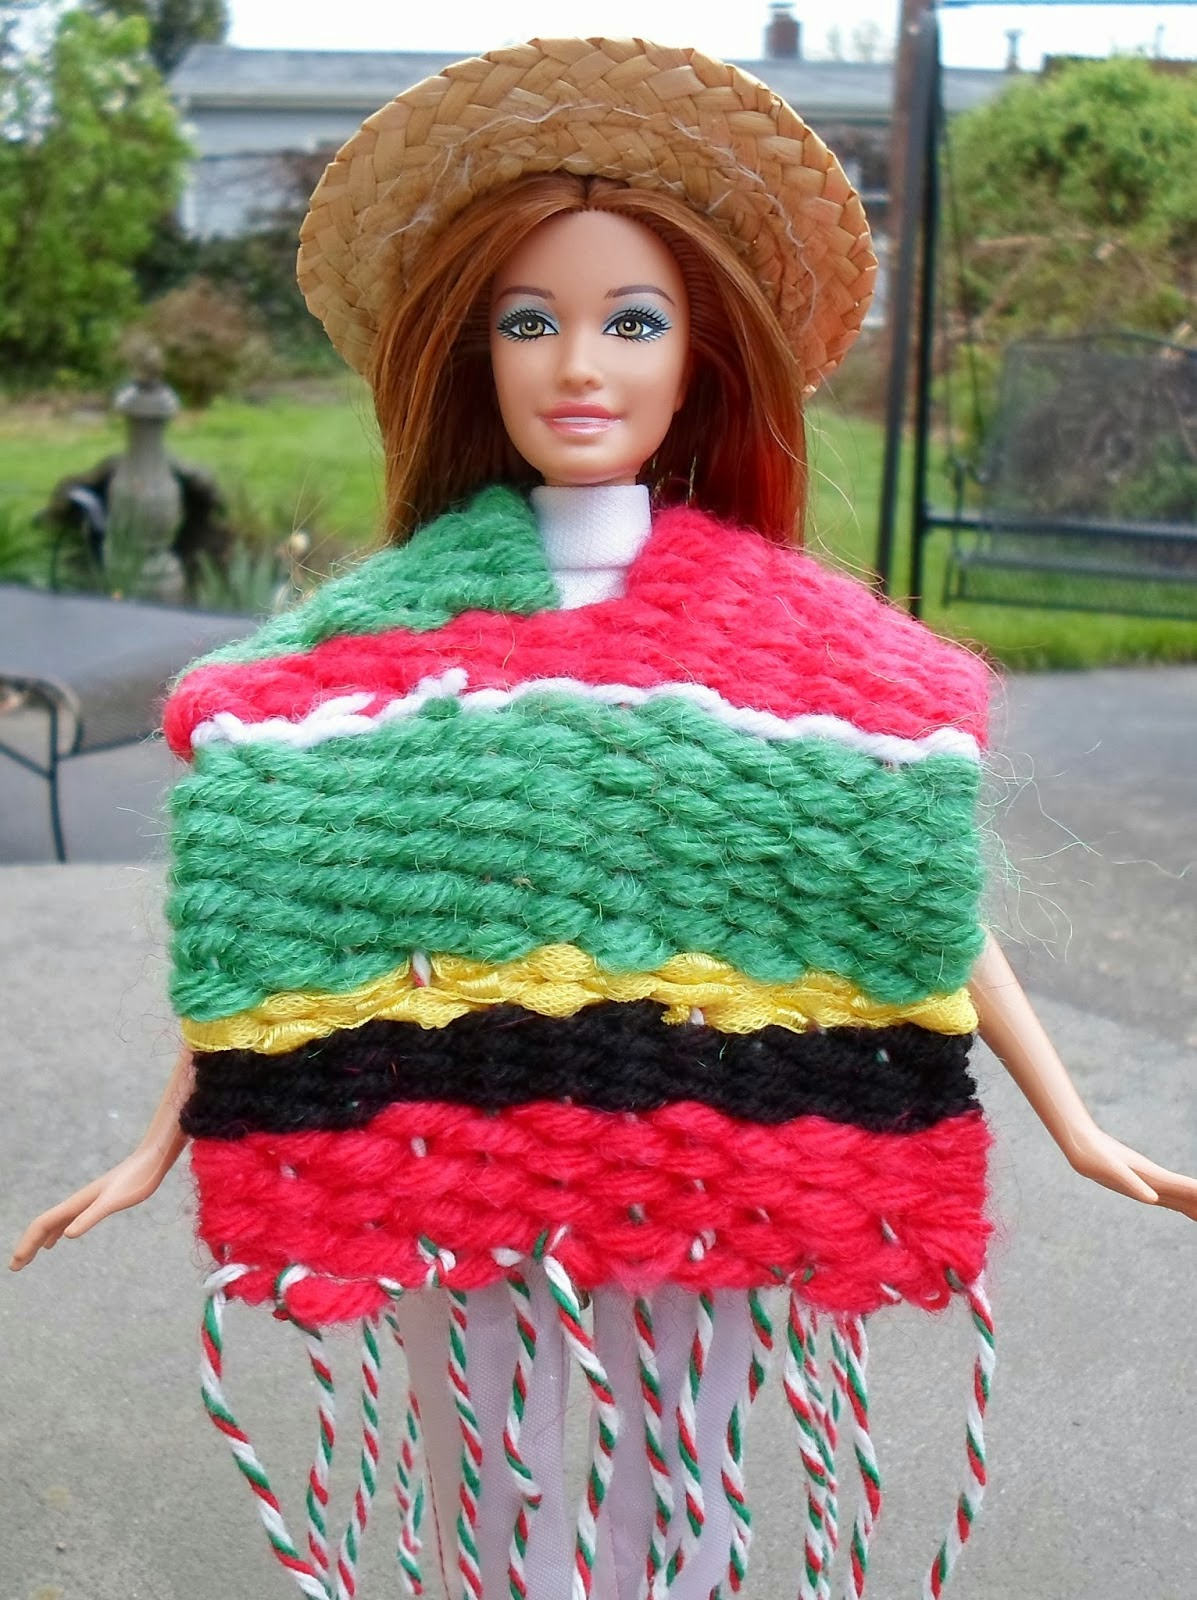 http://happierthanapiginmud.blogspot.com/2014/05/hand-woven-mexican-poncho-for-barbie.html